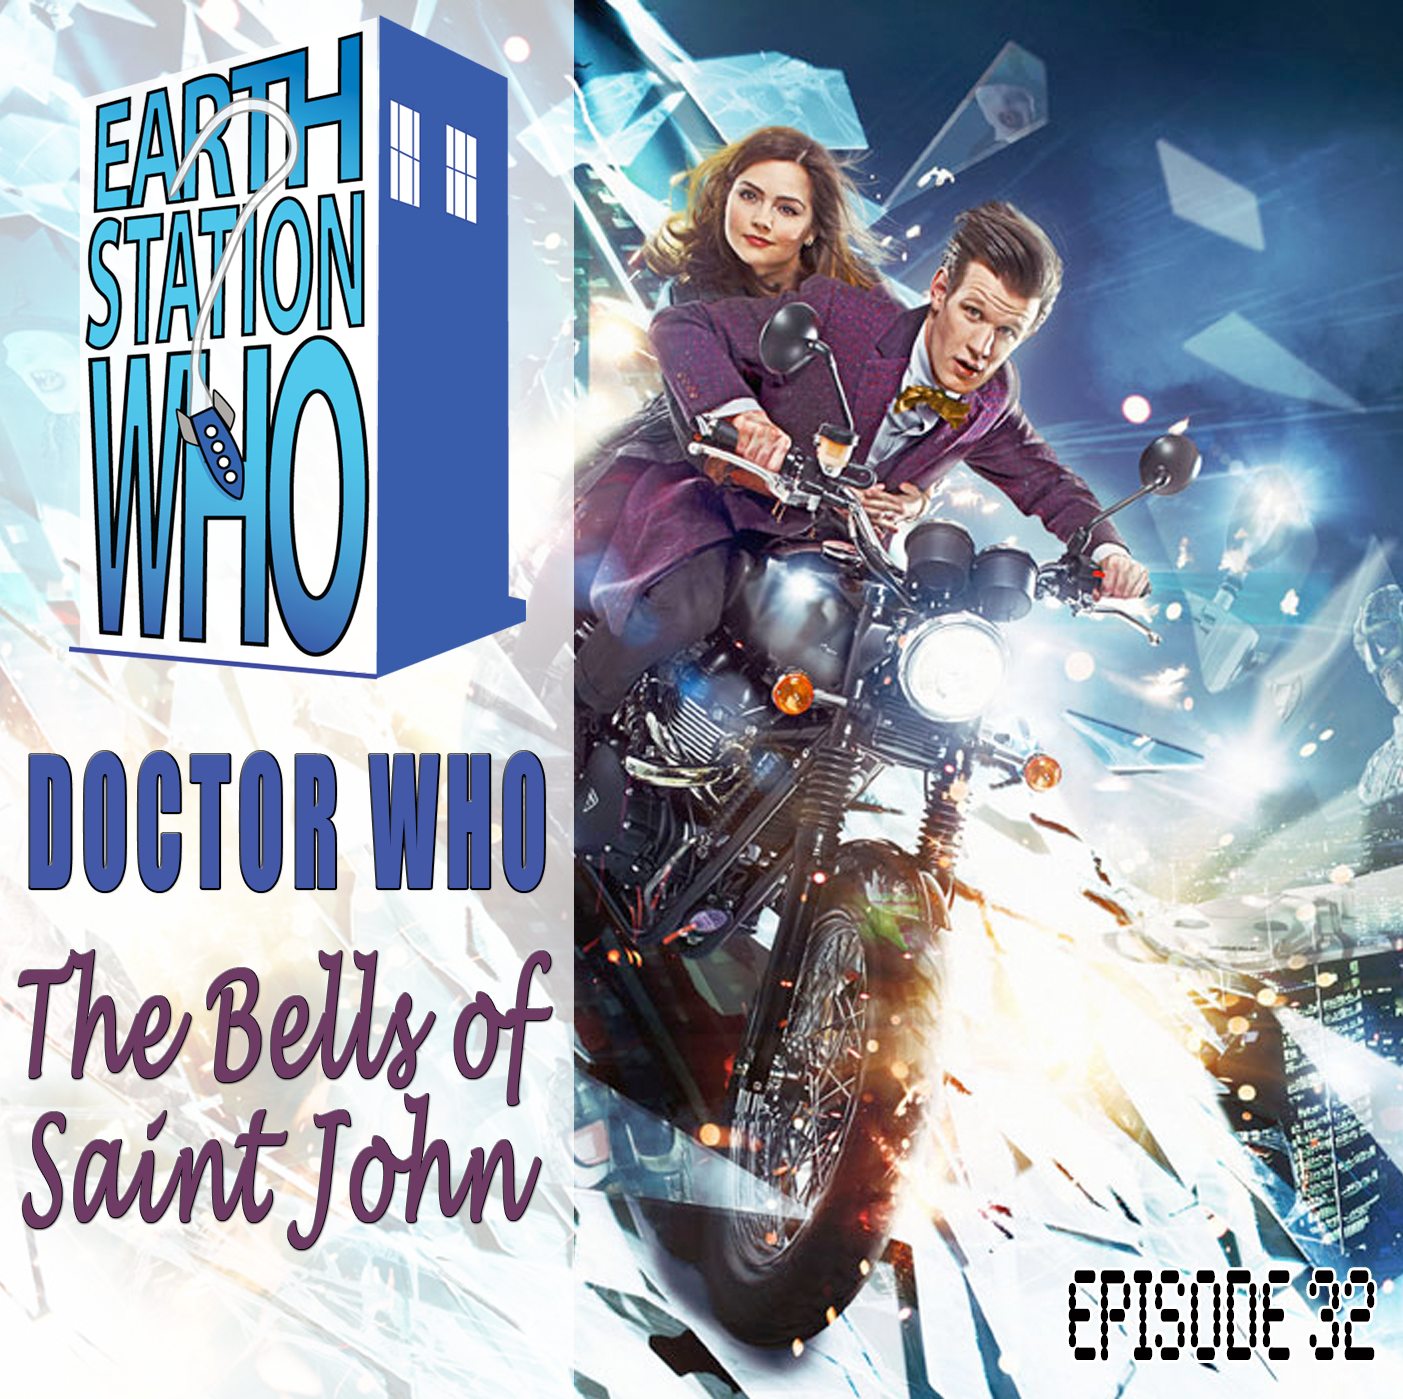 Earth Station Who - Episode 32 : The Bells of St John